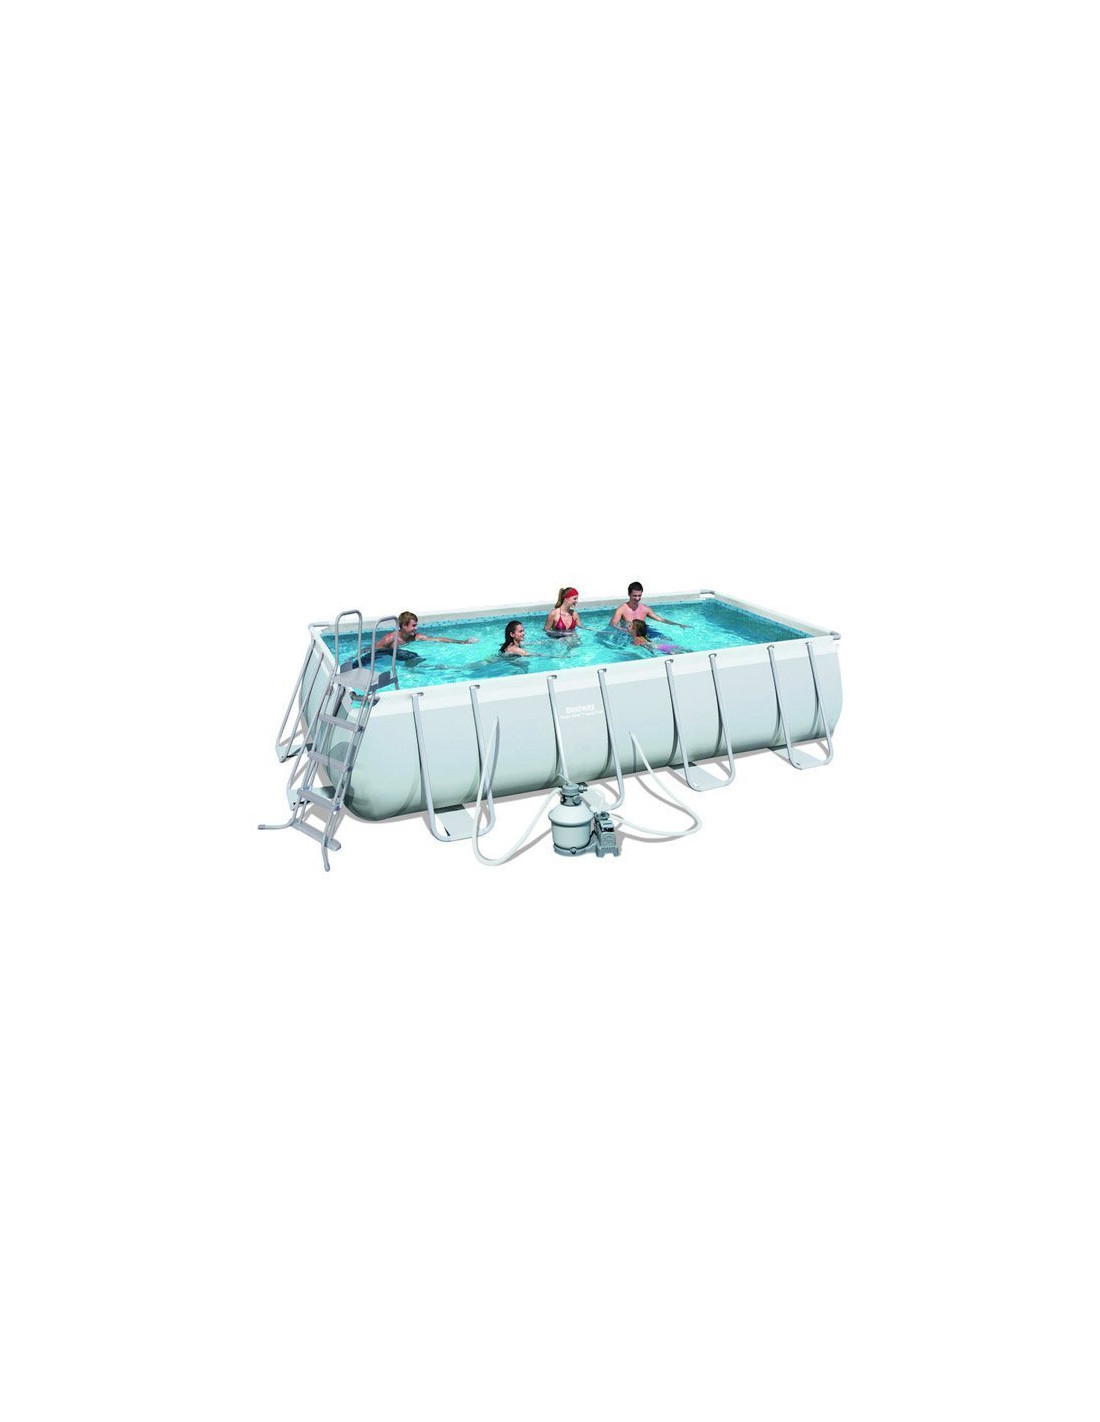 Piscine tubulaire rectangulaire bestway avec filtre sable for Piscine tubulaire rectangulaire